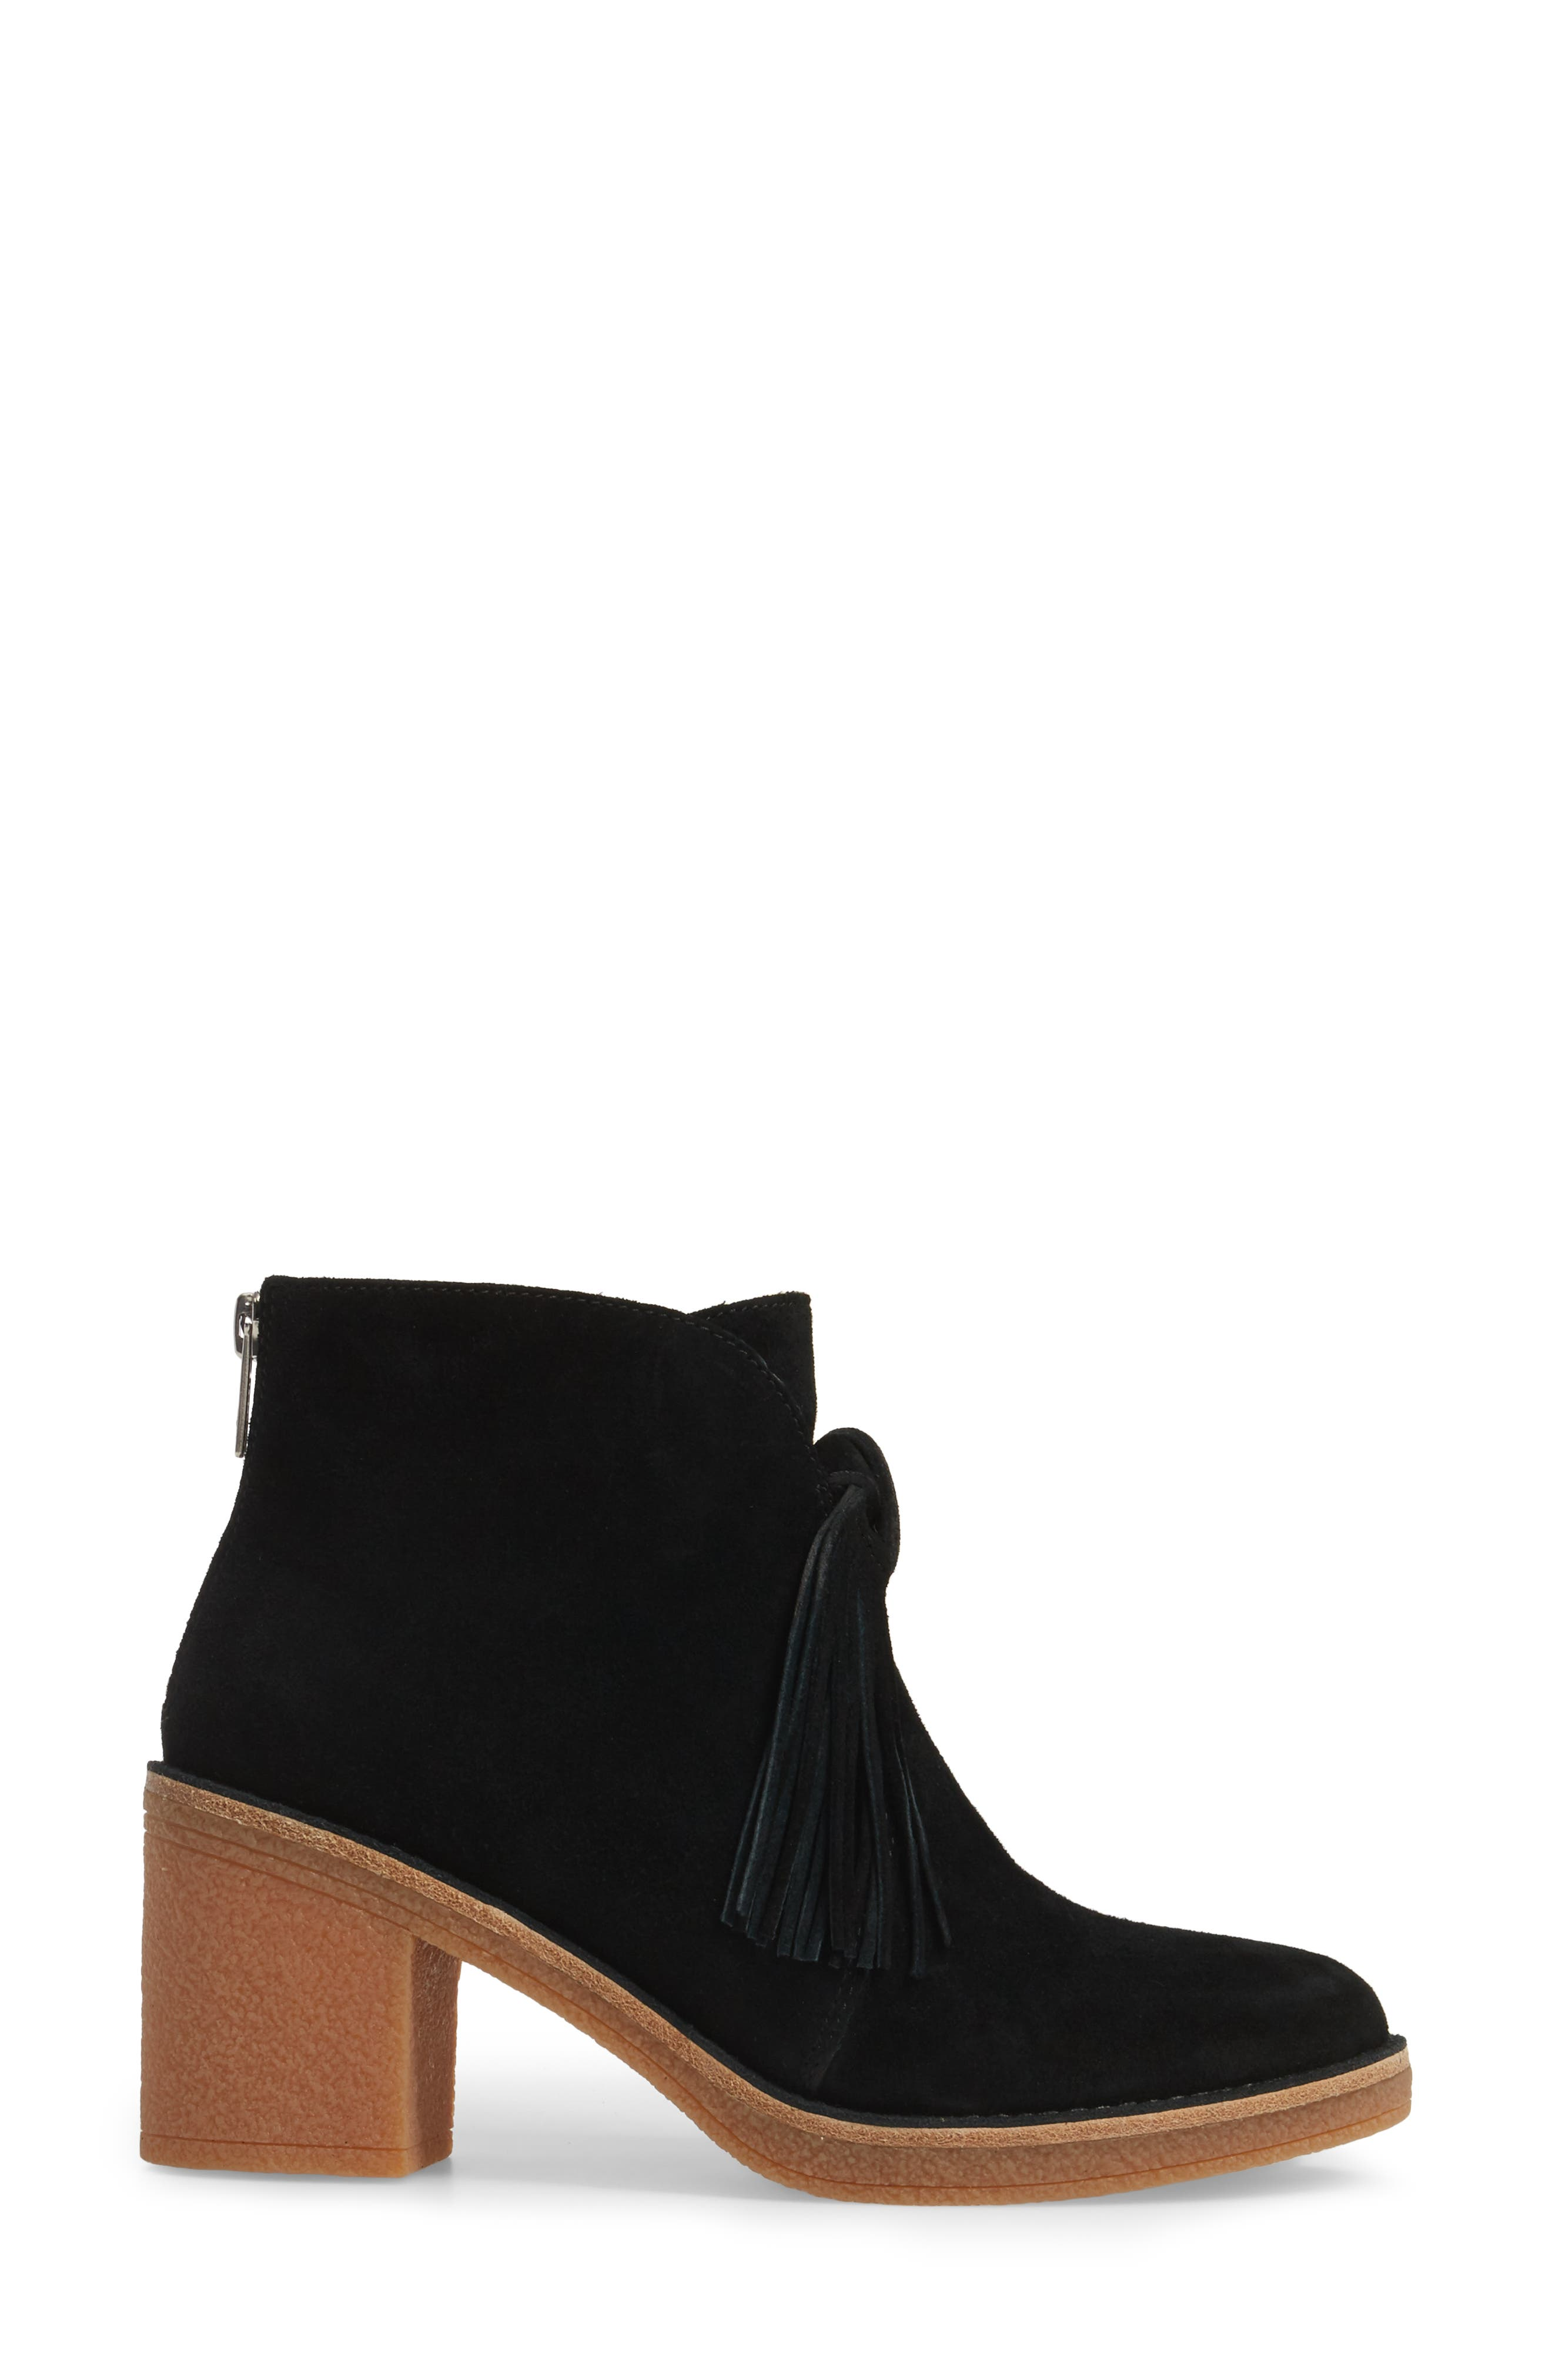 Corin Fringe Tassel Bootie,                             Alternate thumbnail 3, color,                             001